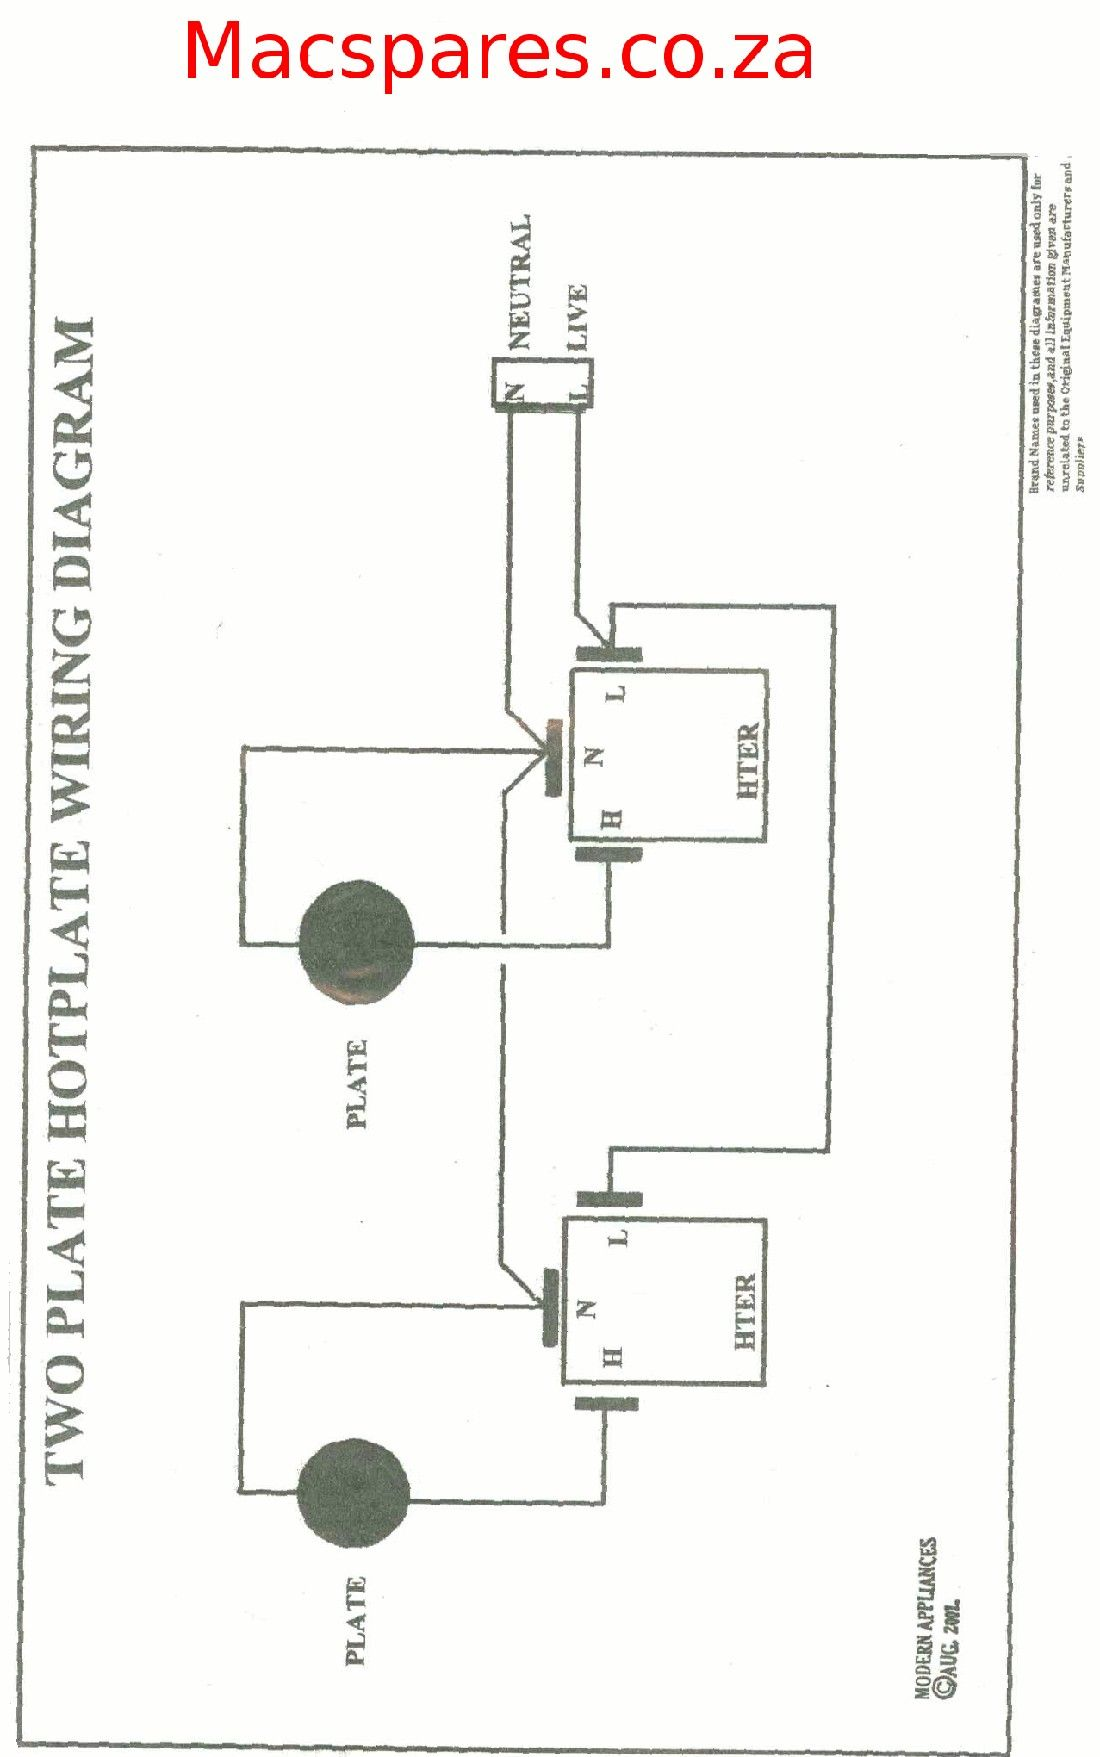 New Wiring Diagram Of A Distribution Board Electric Hot Plate Electrical Circuit Diagram Fireplace Parts